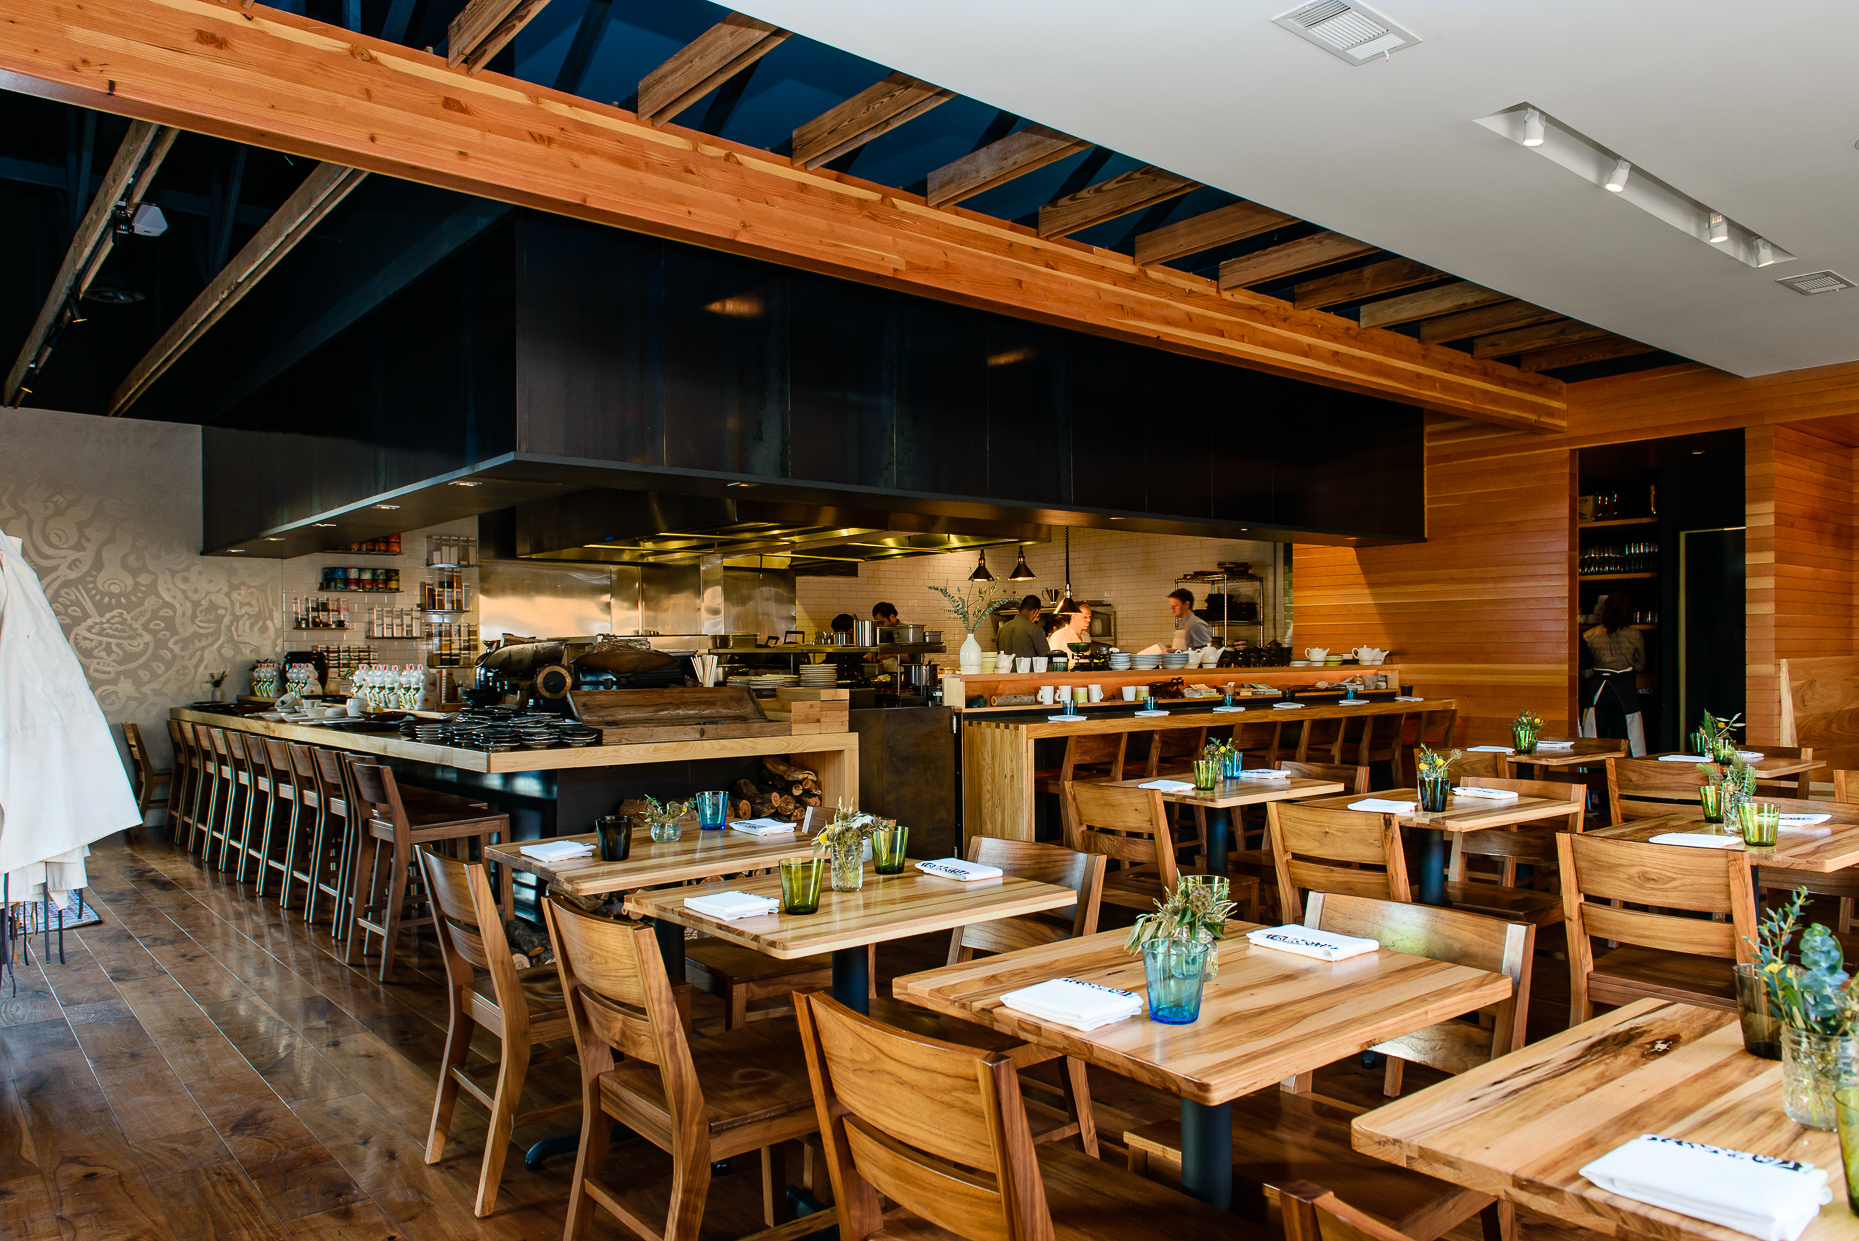 Austin-Commercial-Photographers-Architectural-Interior-Qui-Restaurant-Design-East